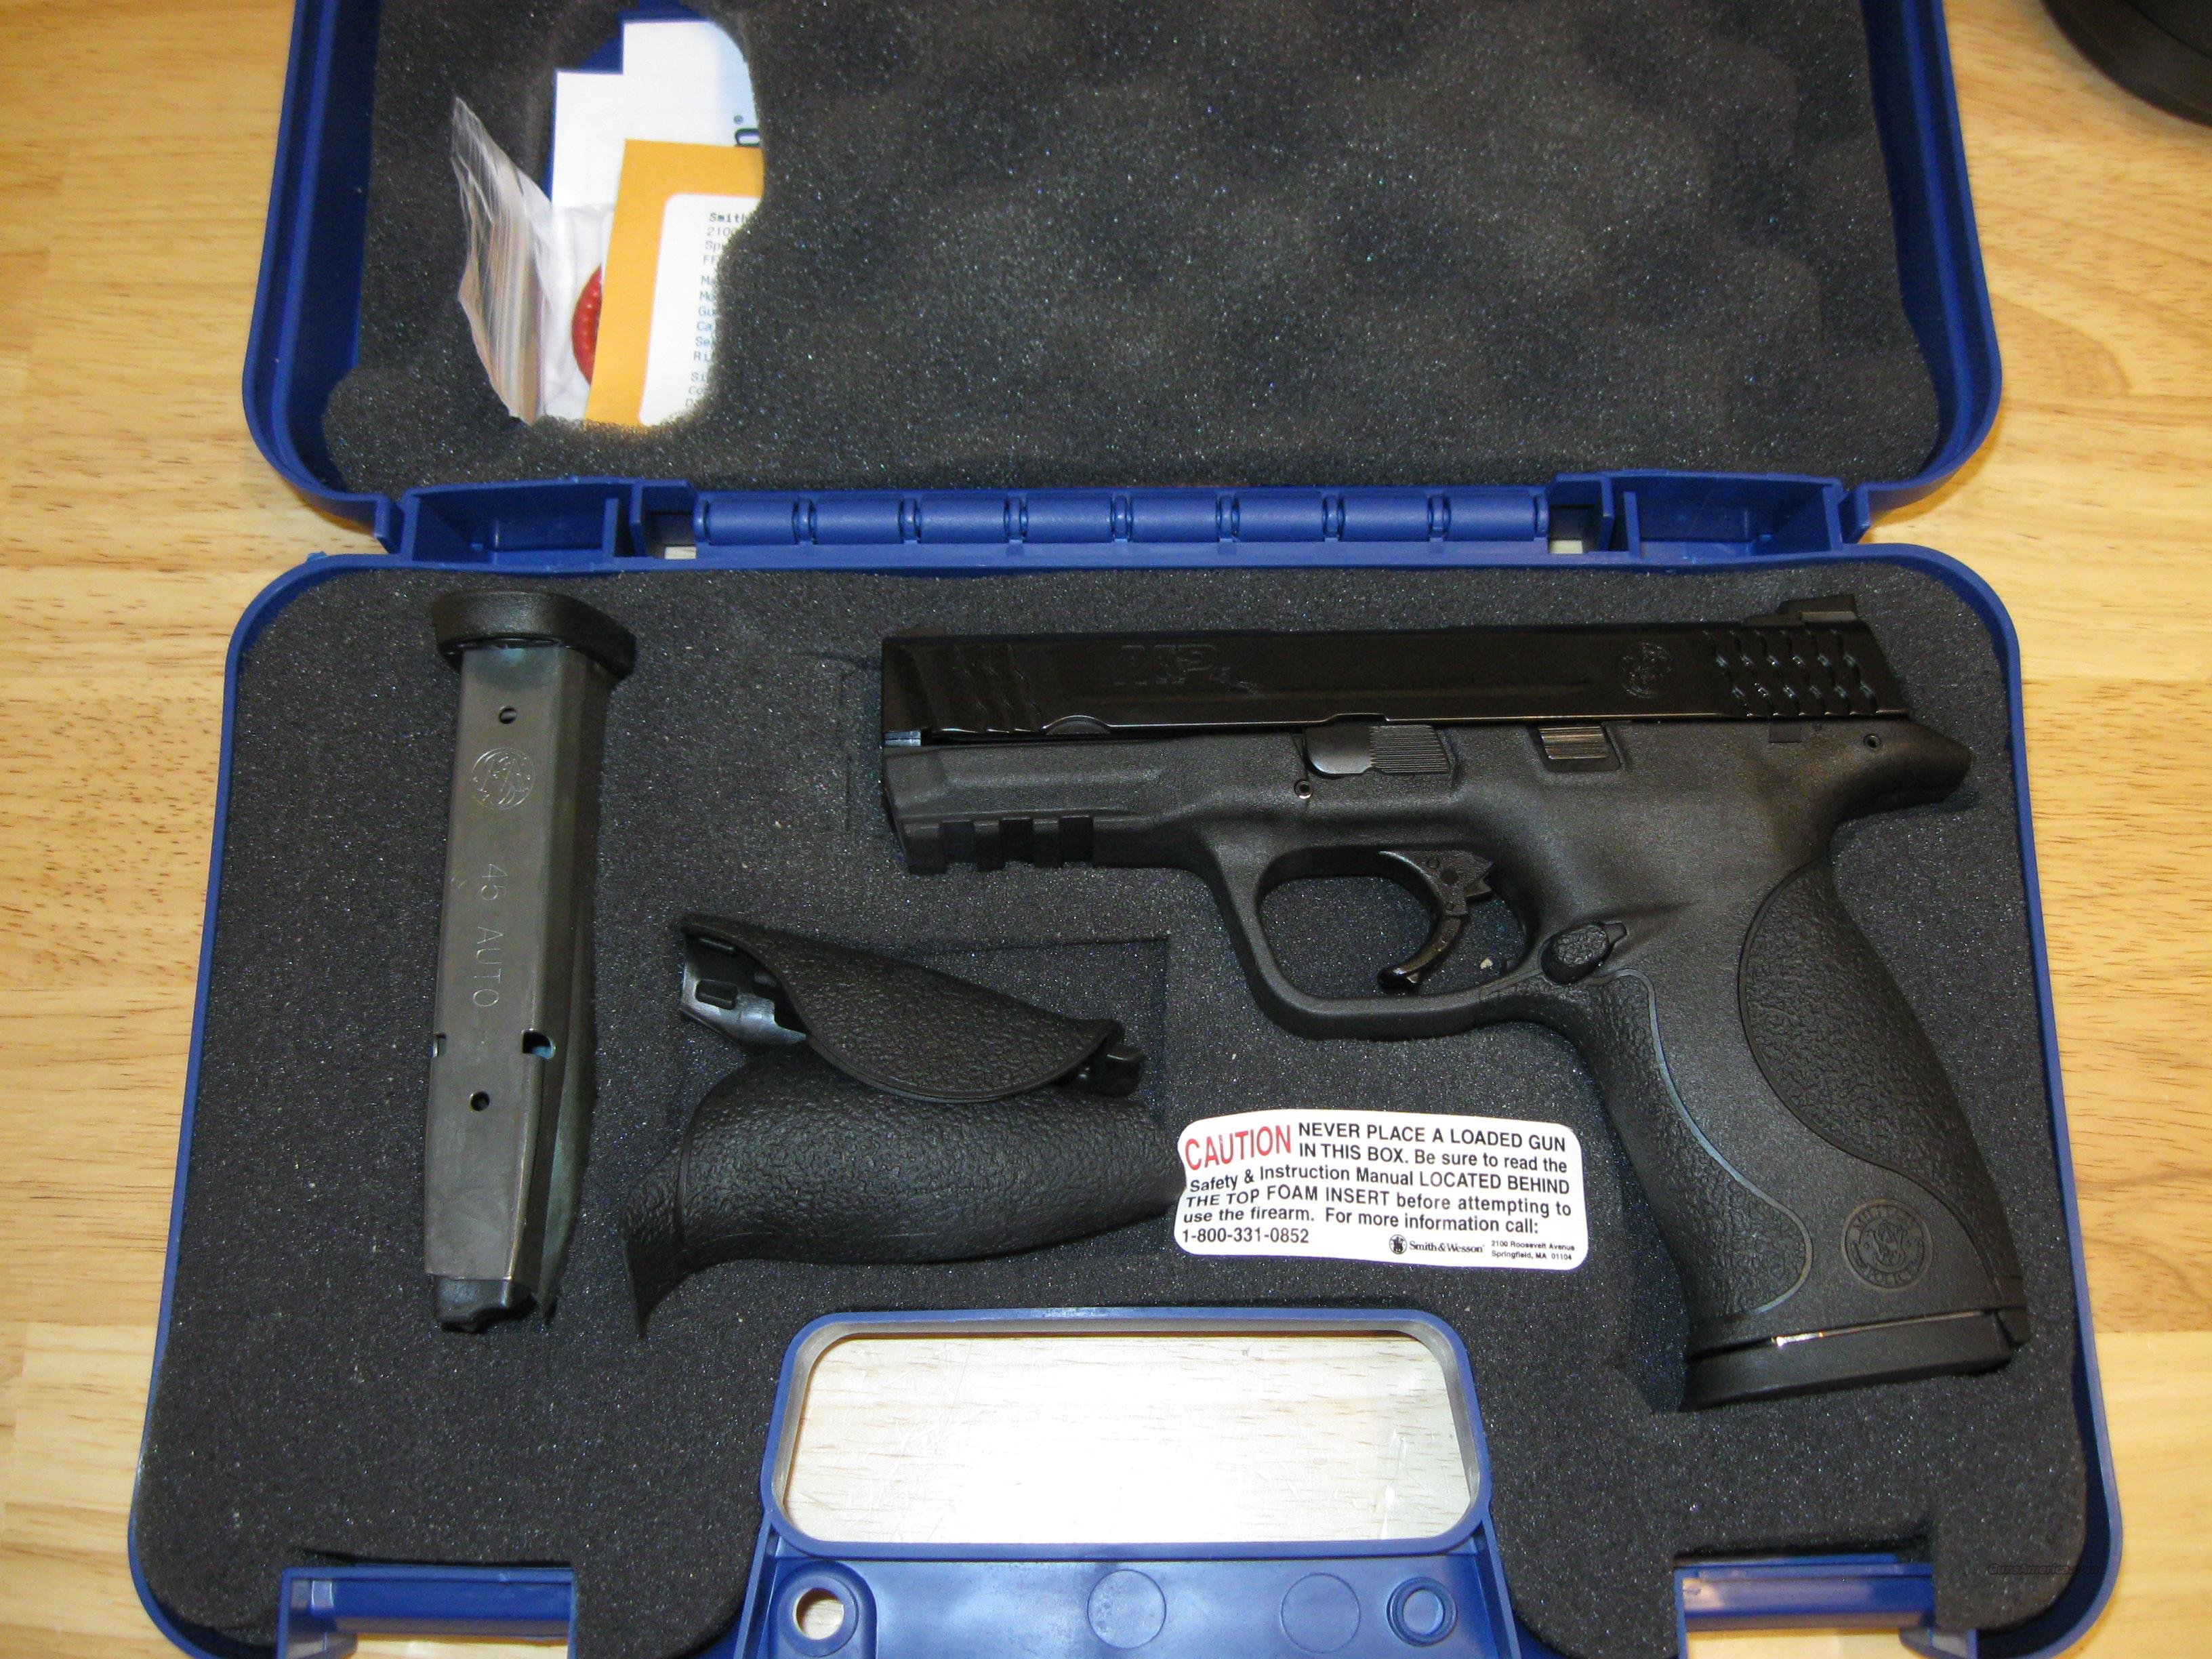 "Smith & Wesson M&P 45 Pistol 109307, 45 ACP, 4"", Polymer Grip, Black Finish, 10 Rd  Guns > Pistols > Smith & Wesson Pistols - Autos > Polymer Frame"